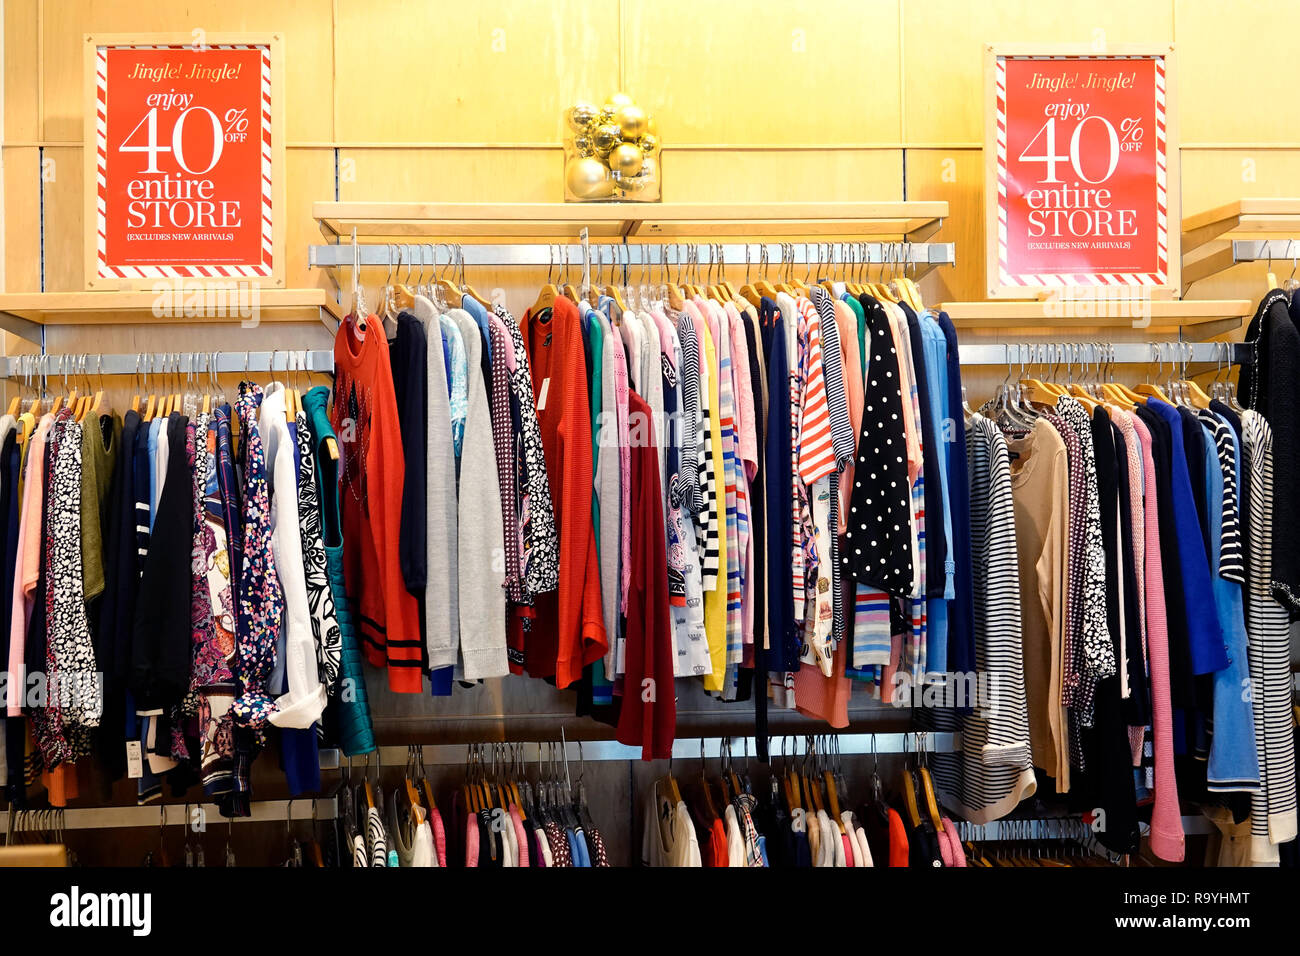 florida fort ft lauderdale pembroke pines shops at pembroke gardens mall talbots womens clothing fashion inside interior display sale product R9YHMT - Banana Republic Shops At Pembroke Gardens